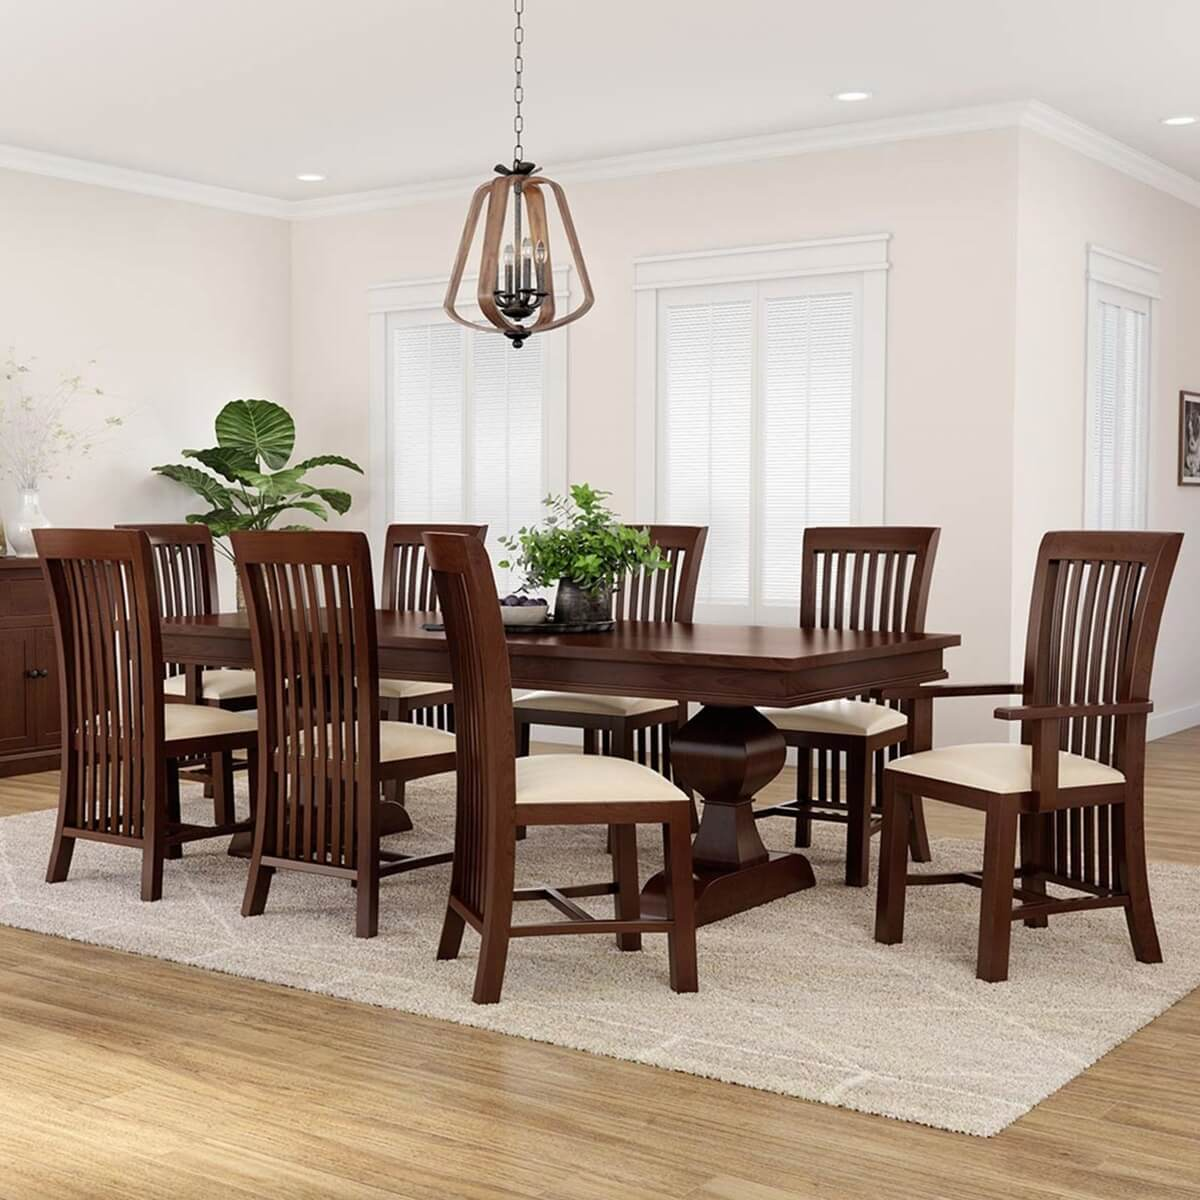 Tannersville Solid Mahogany Wood Dining Table Chair Set For 8 People